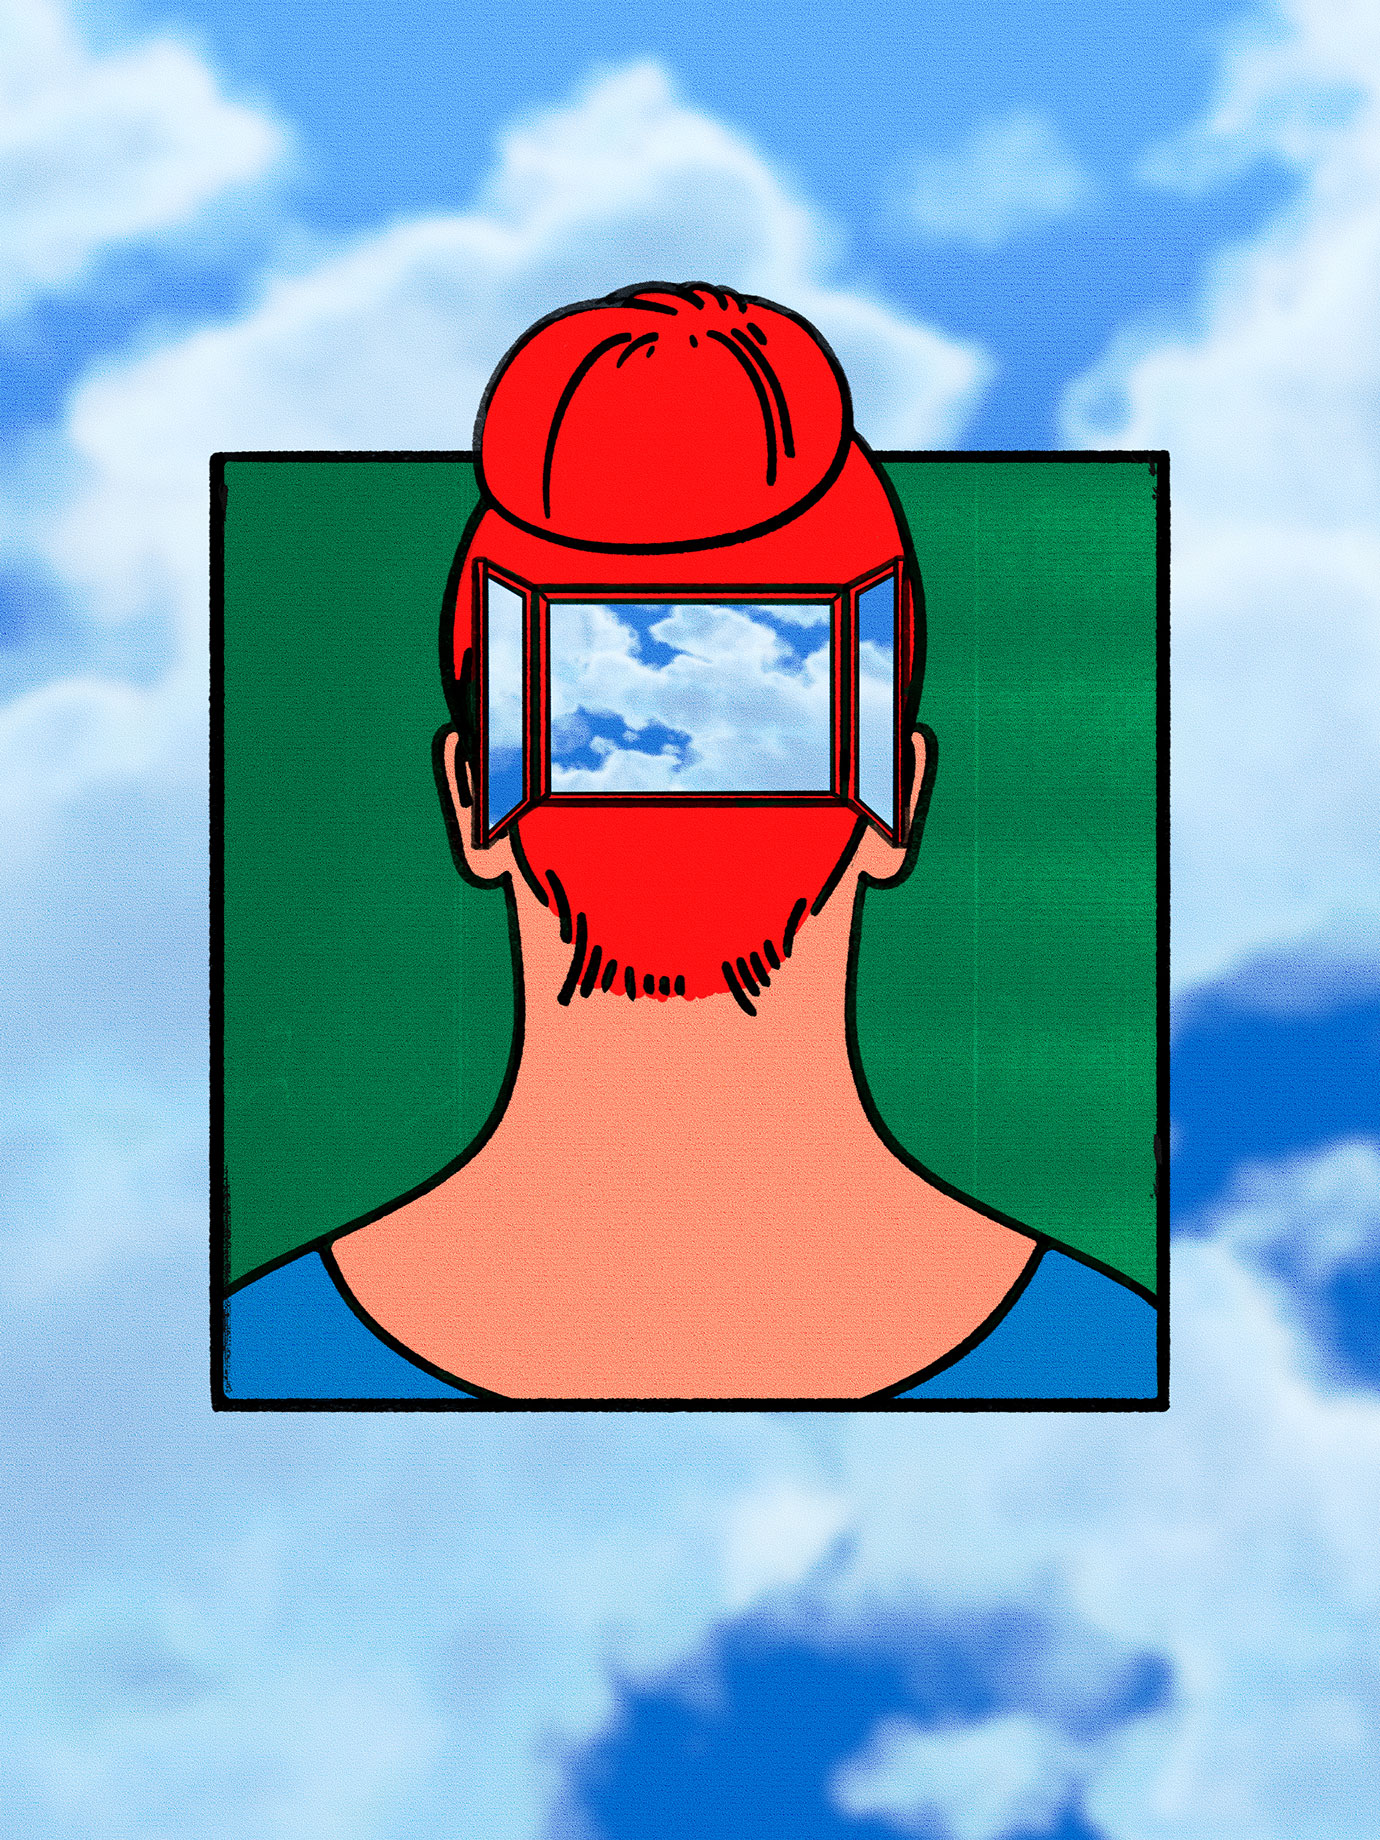 illustration of the back of a woman's head with a window and clouds in it.